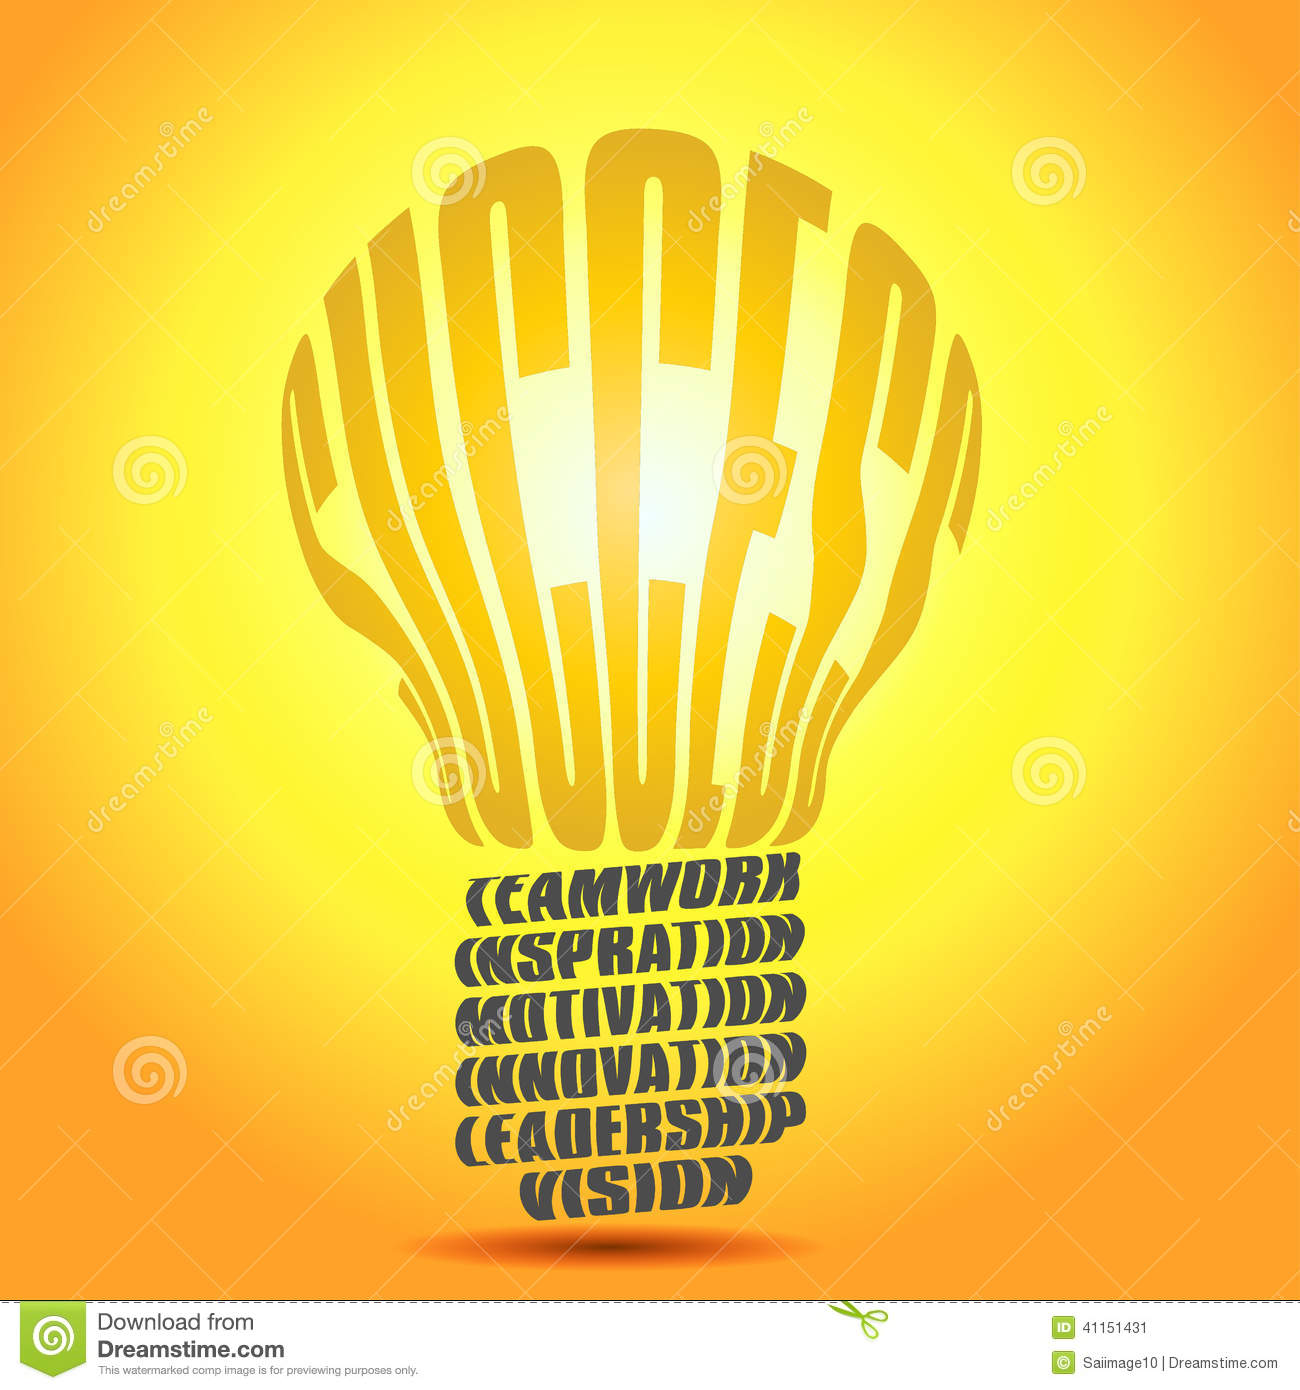 Business Inspirational Quotes Wallpaper Download Golden Success Word Bulb Stock Illustration Illustration